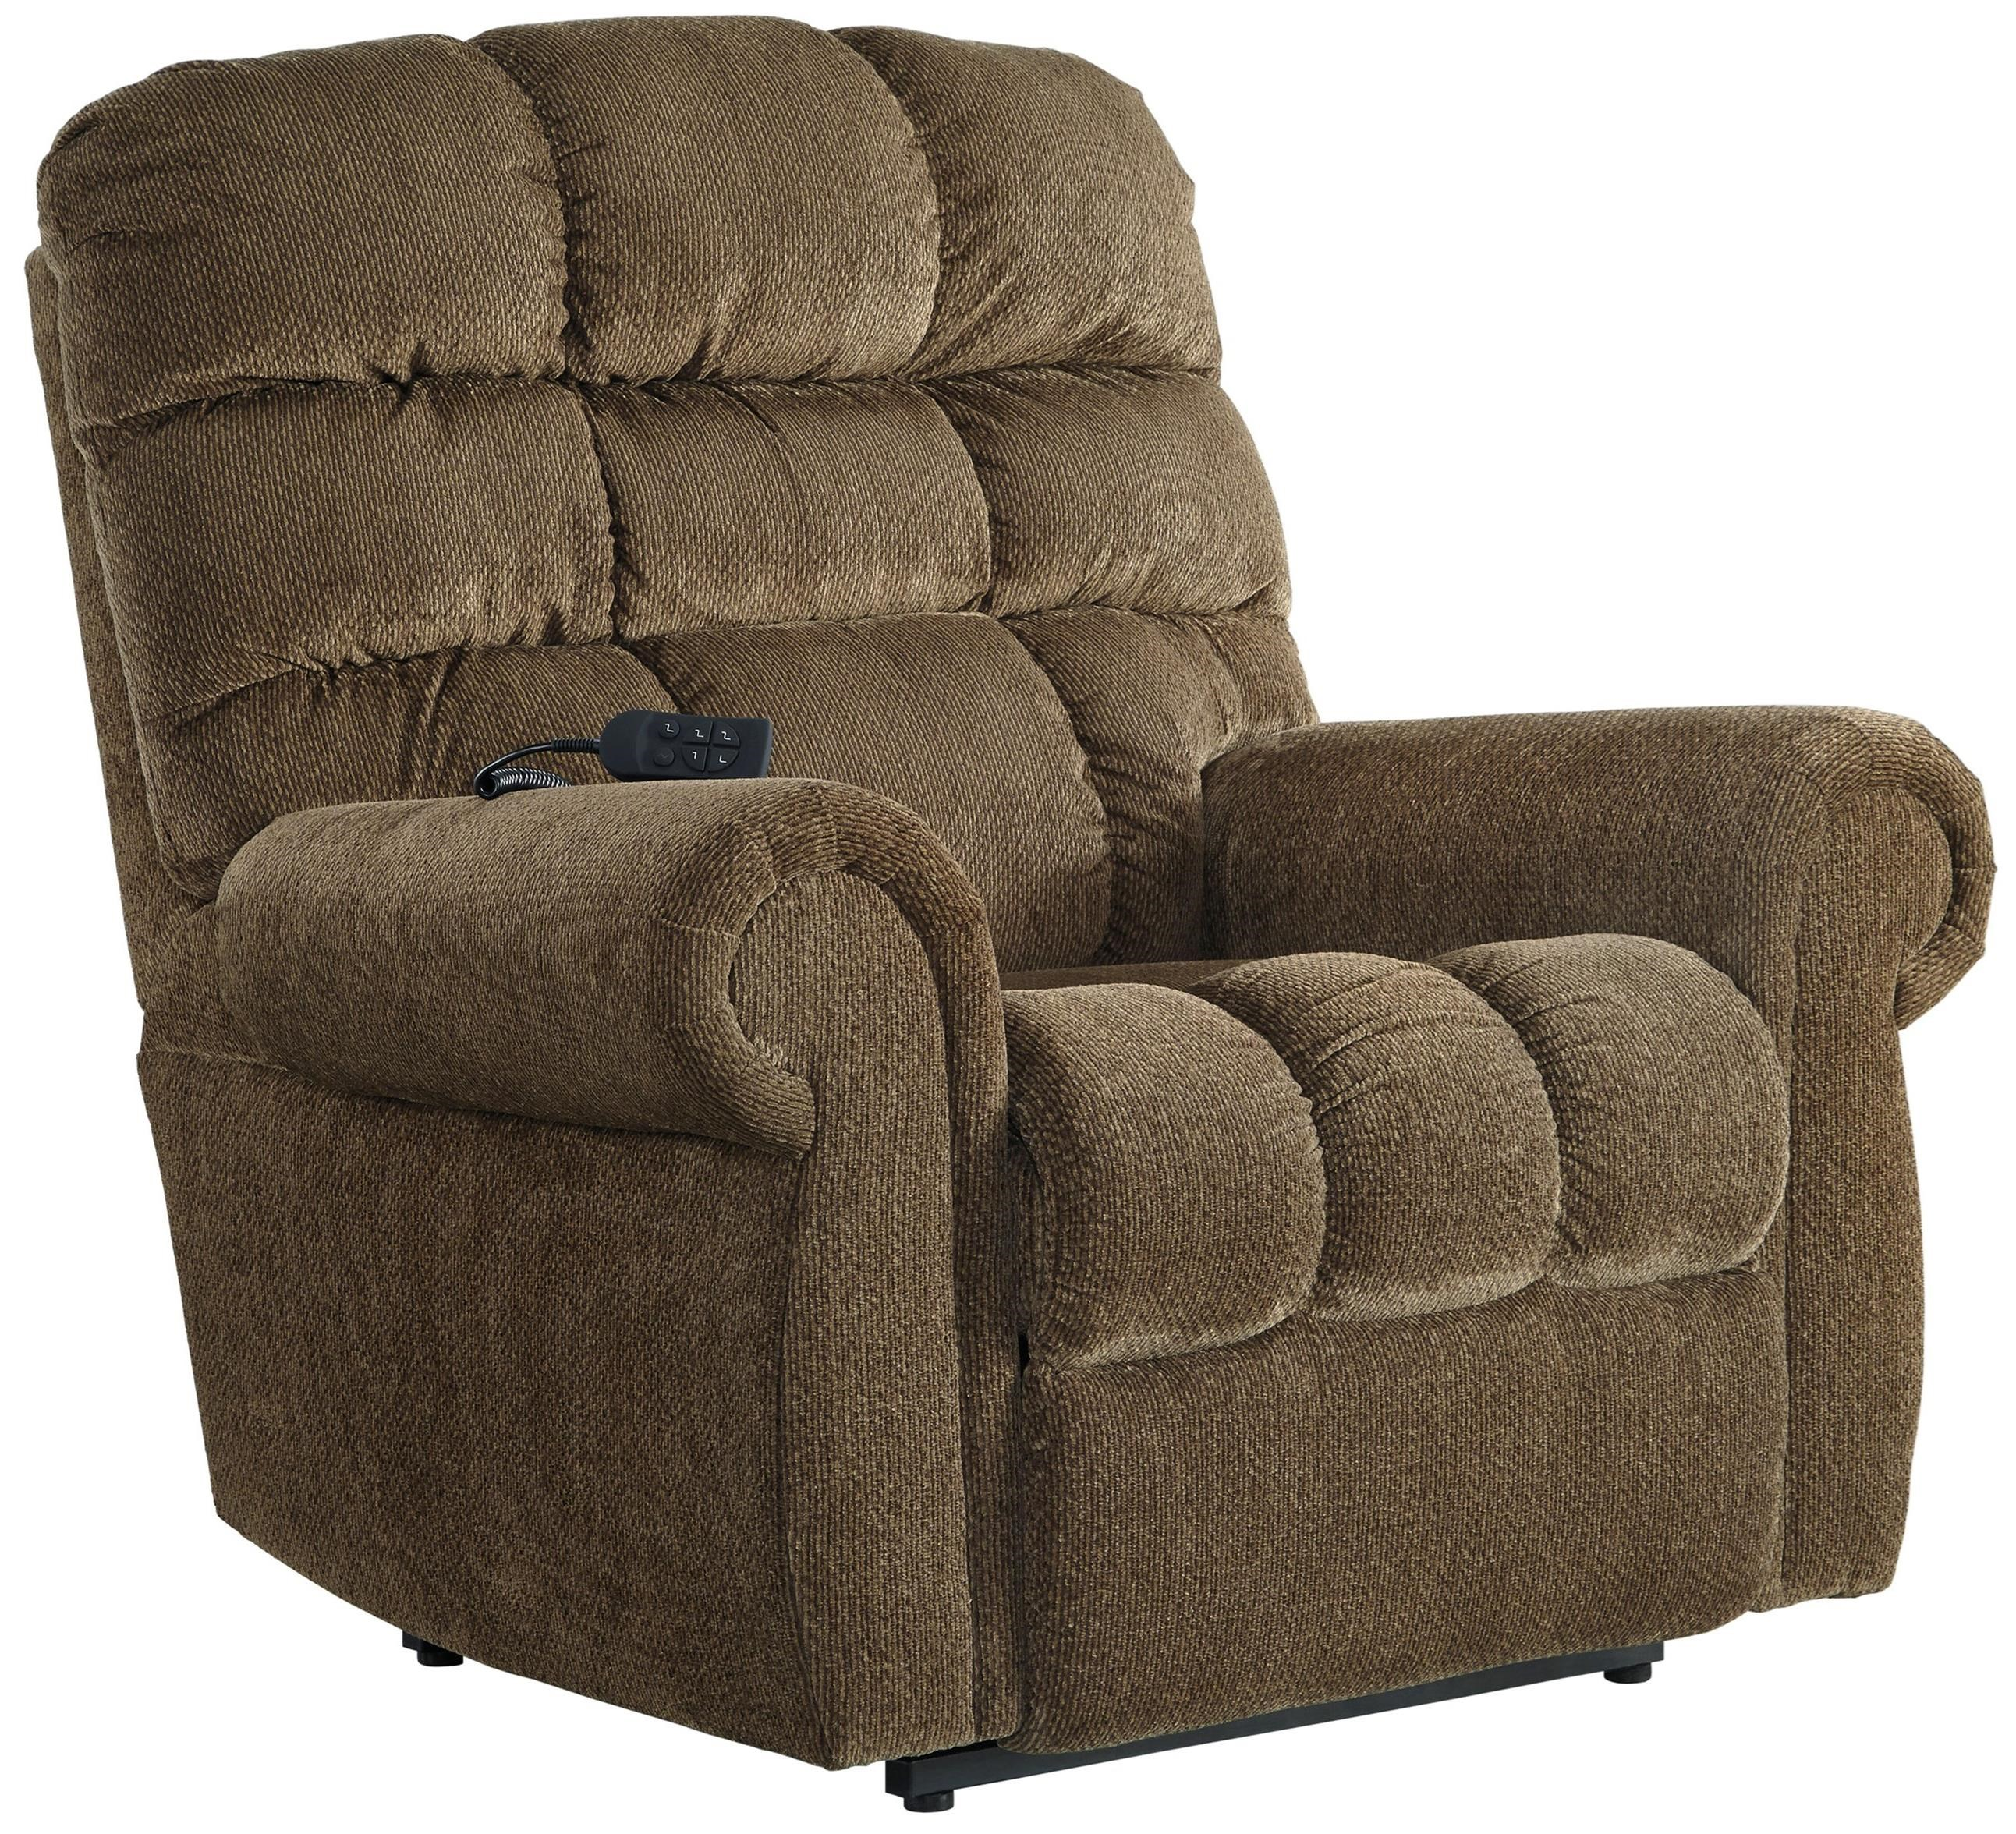 Signature Design by Ashley Ernestine Power Lift Recliner - Item Number: 9760212